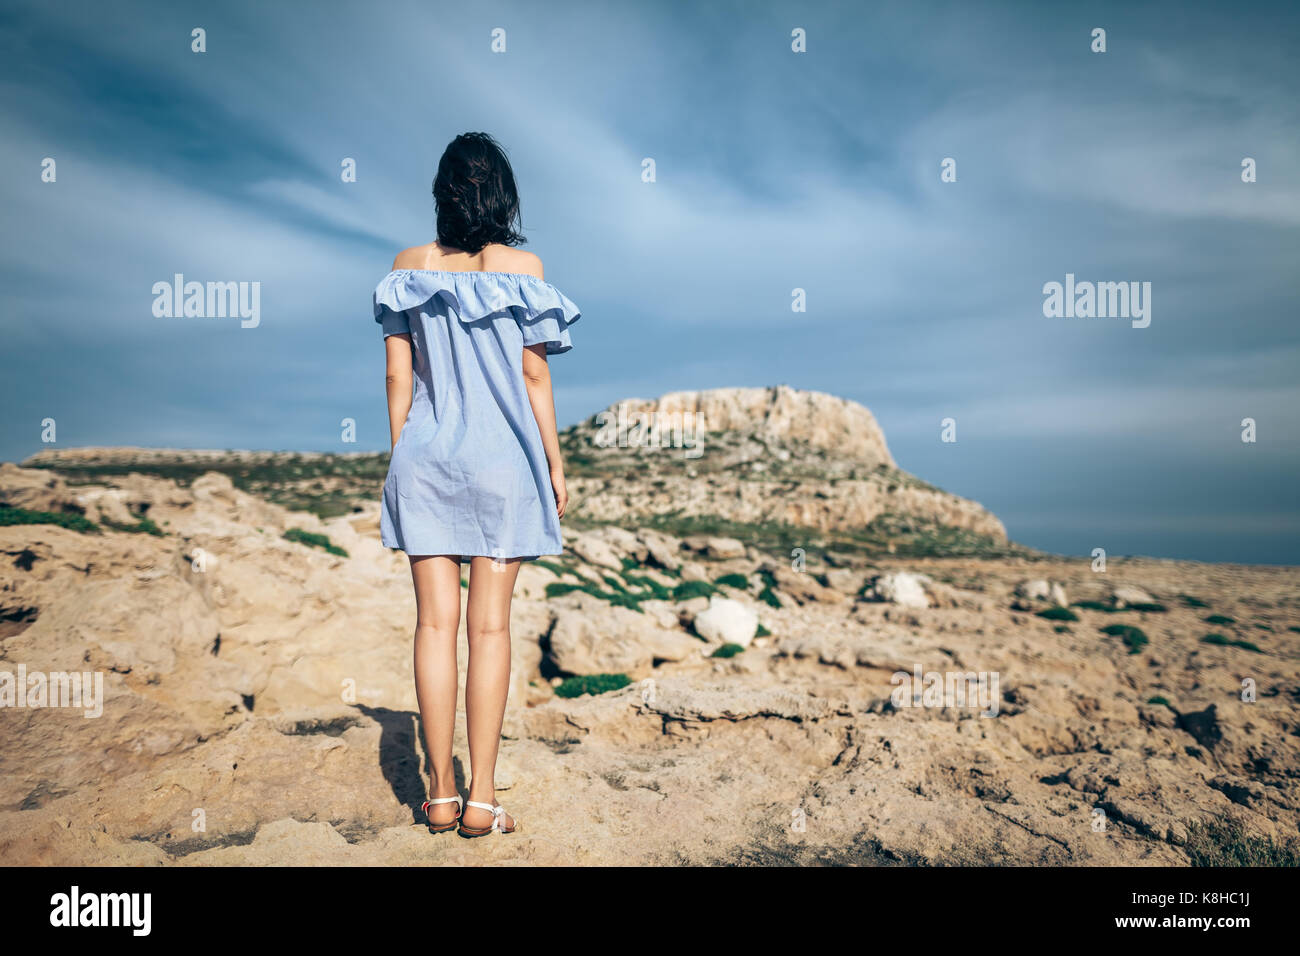 Back view of lonely woman standing on rocky desert with dramatic sky - Stock Image